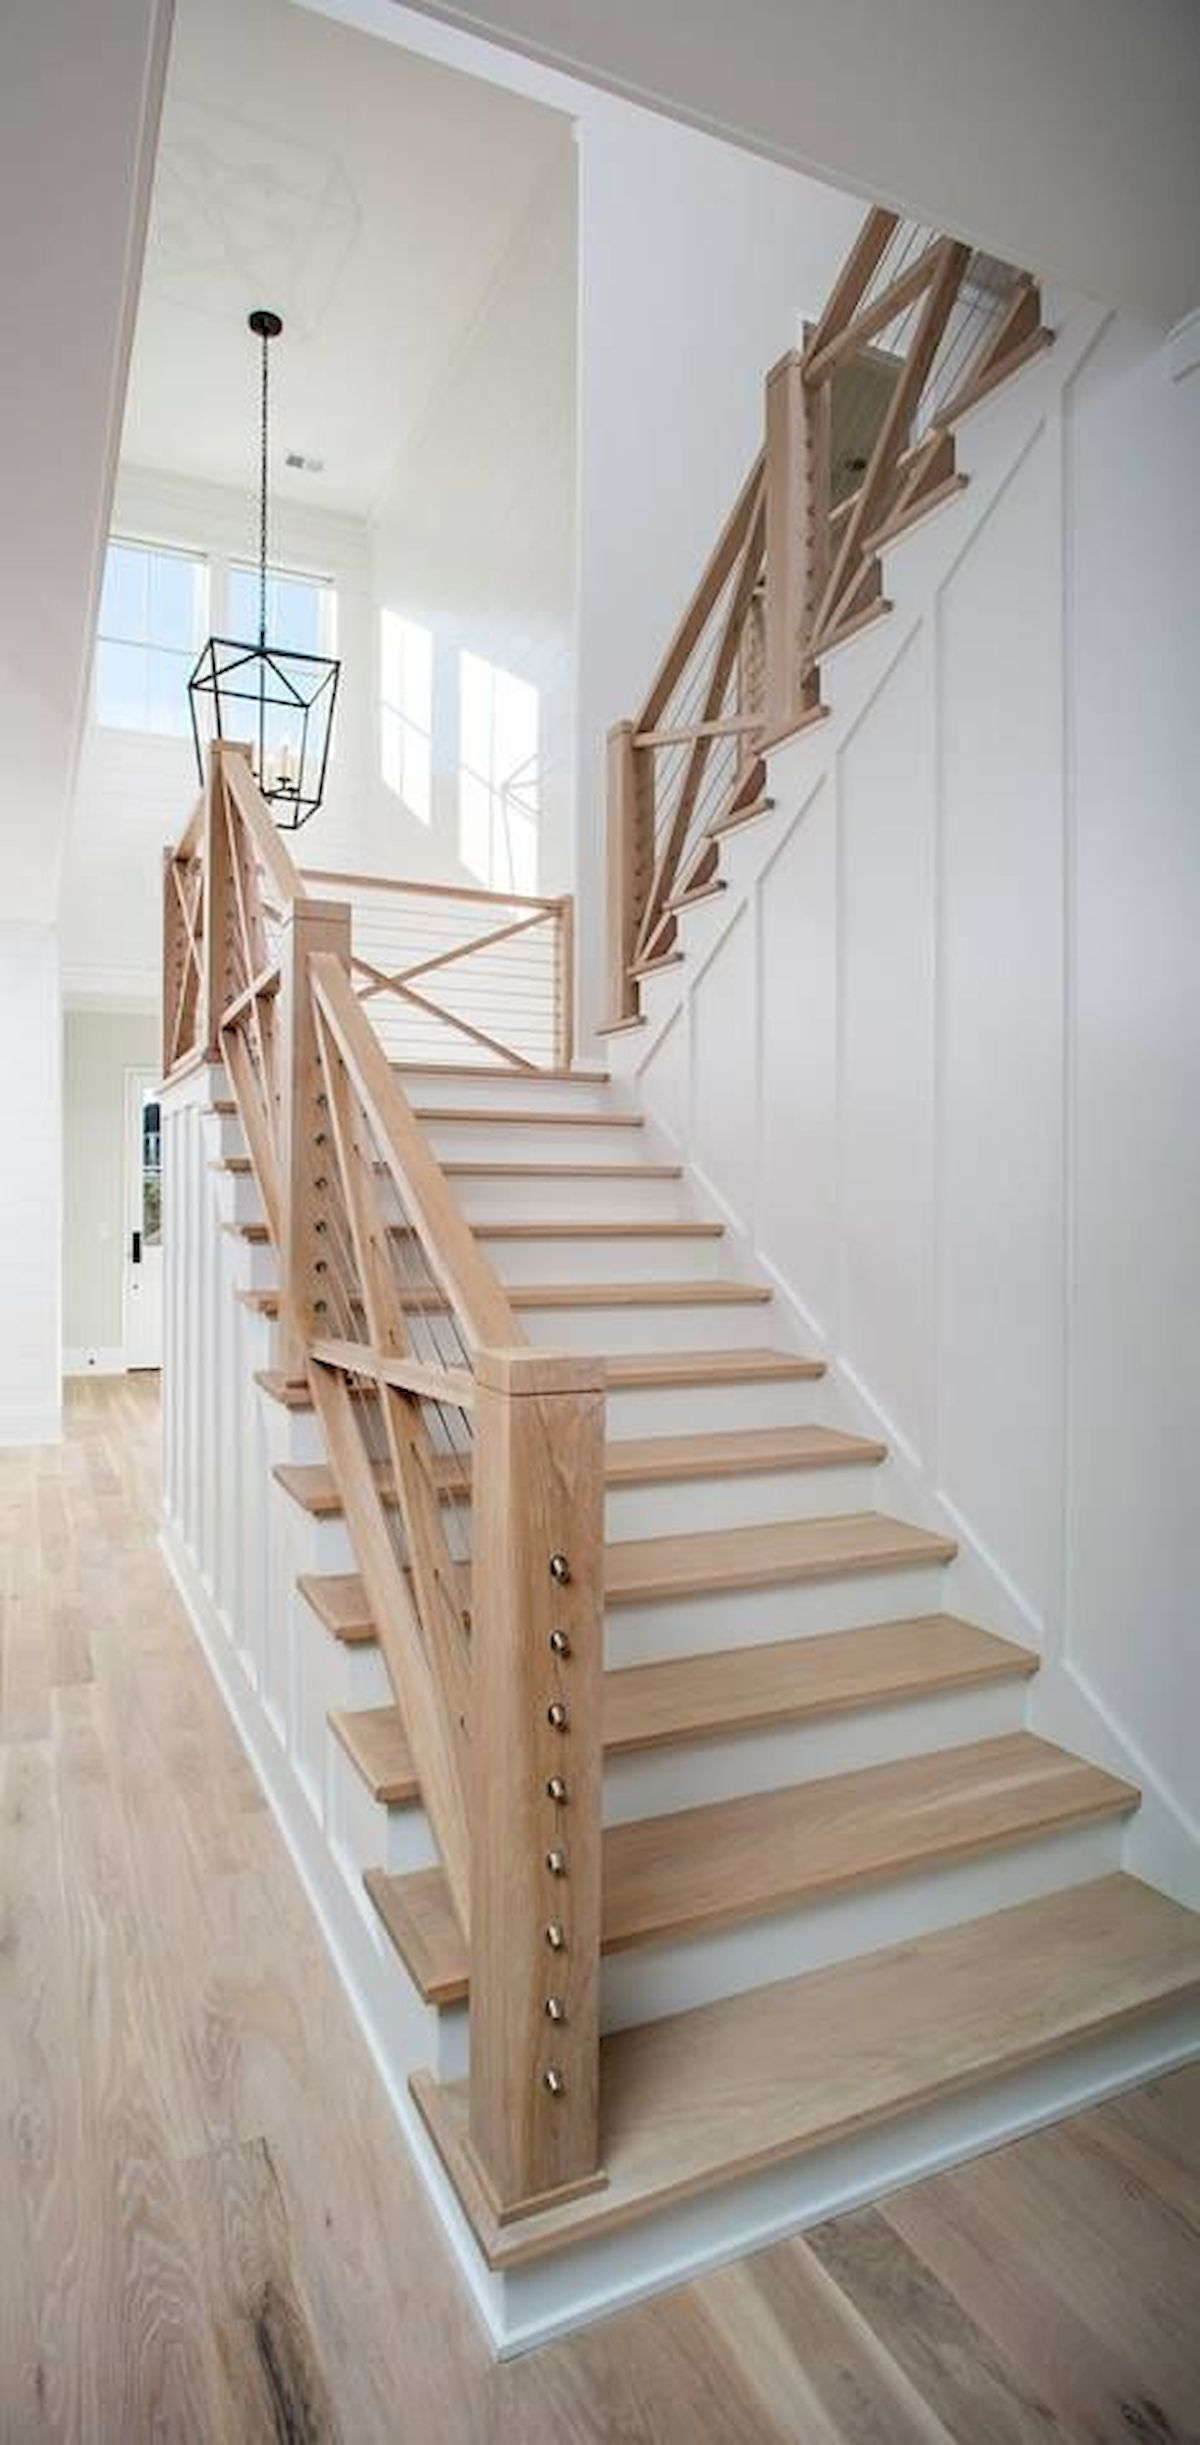 Pin by susetteclaudet on stairs | Stair railing design ...